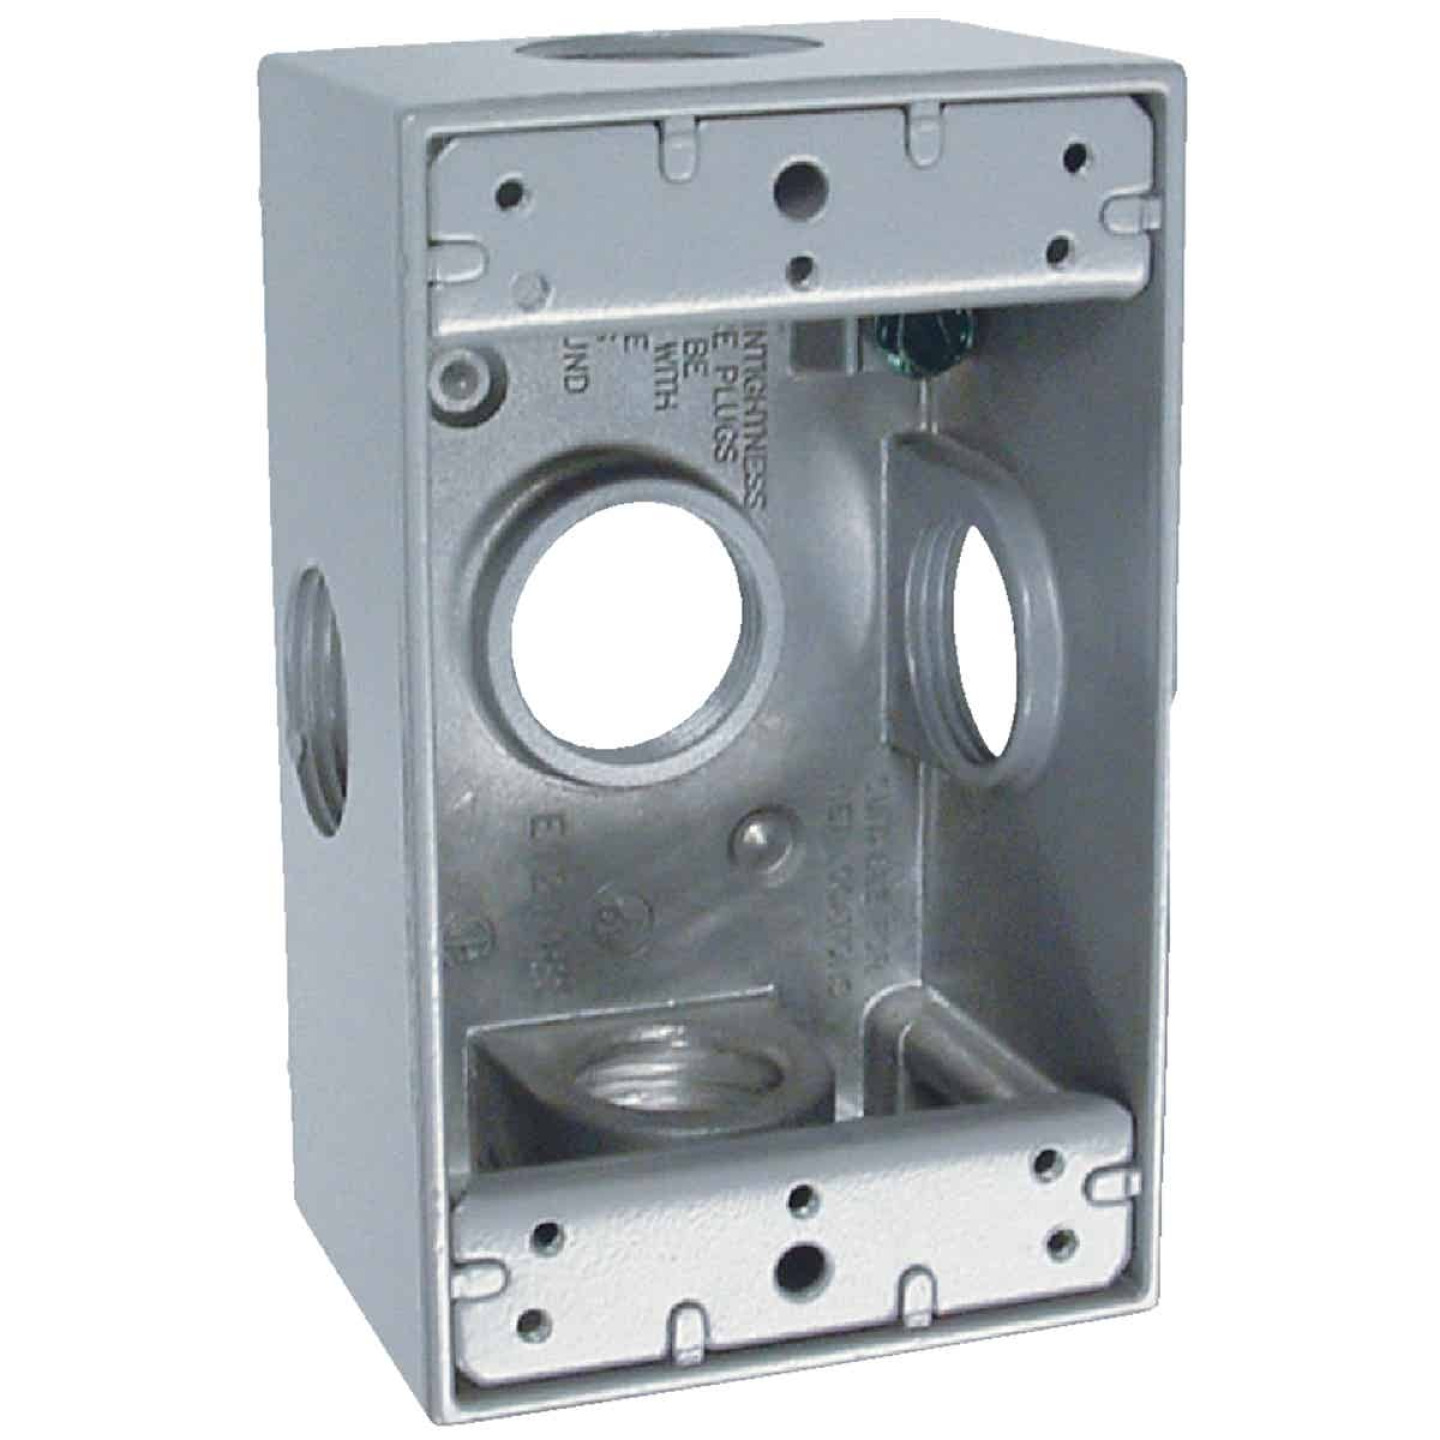 Bell Single Gang 3/4 In. 5-Outlet Gray Aluminum Weatherproof Outdoor Outlet Box Image 1